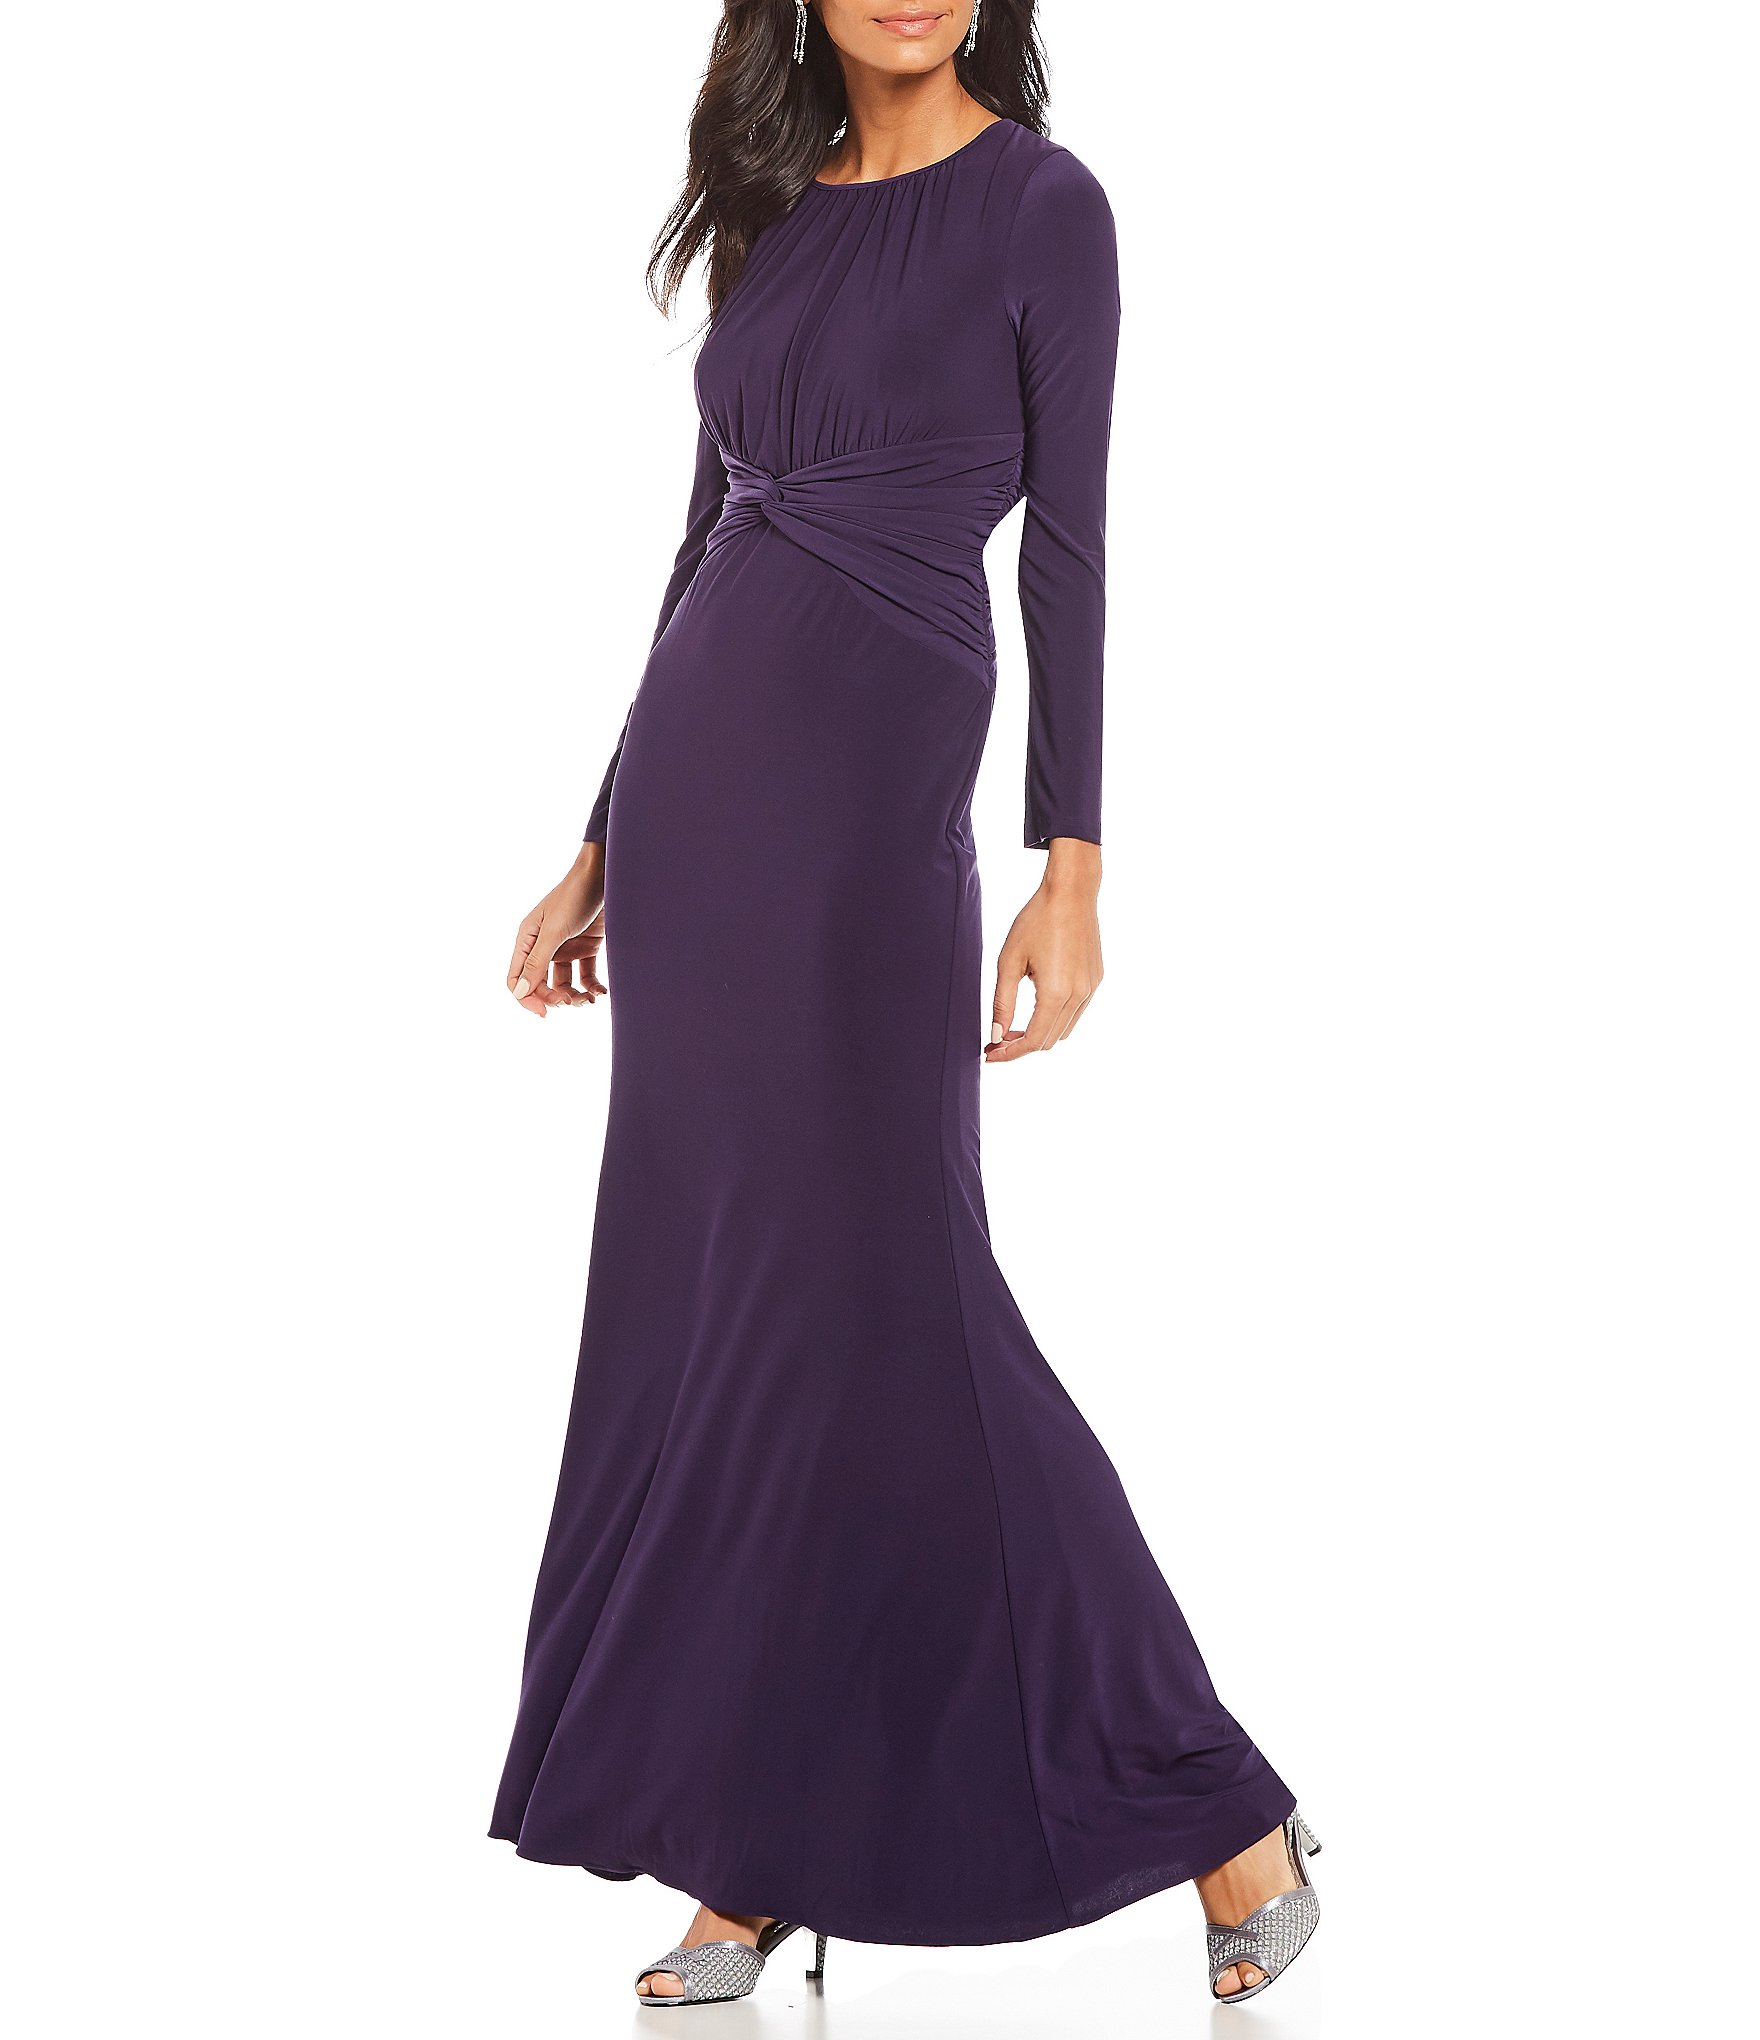 Purple Dillards Mother of Bride Dresses